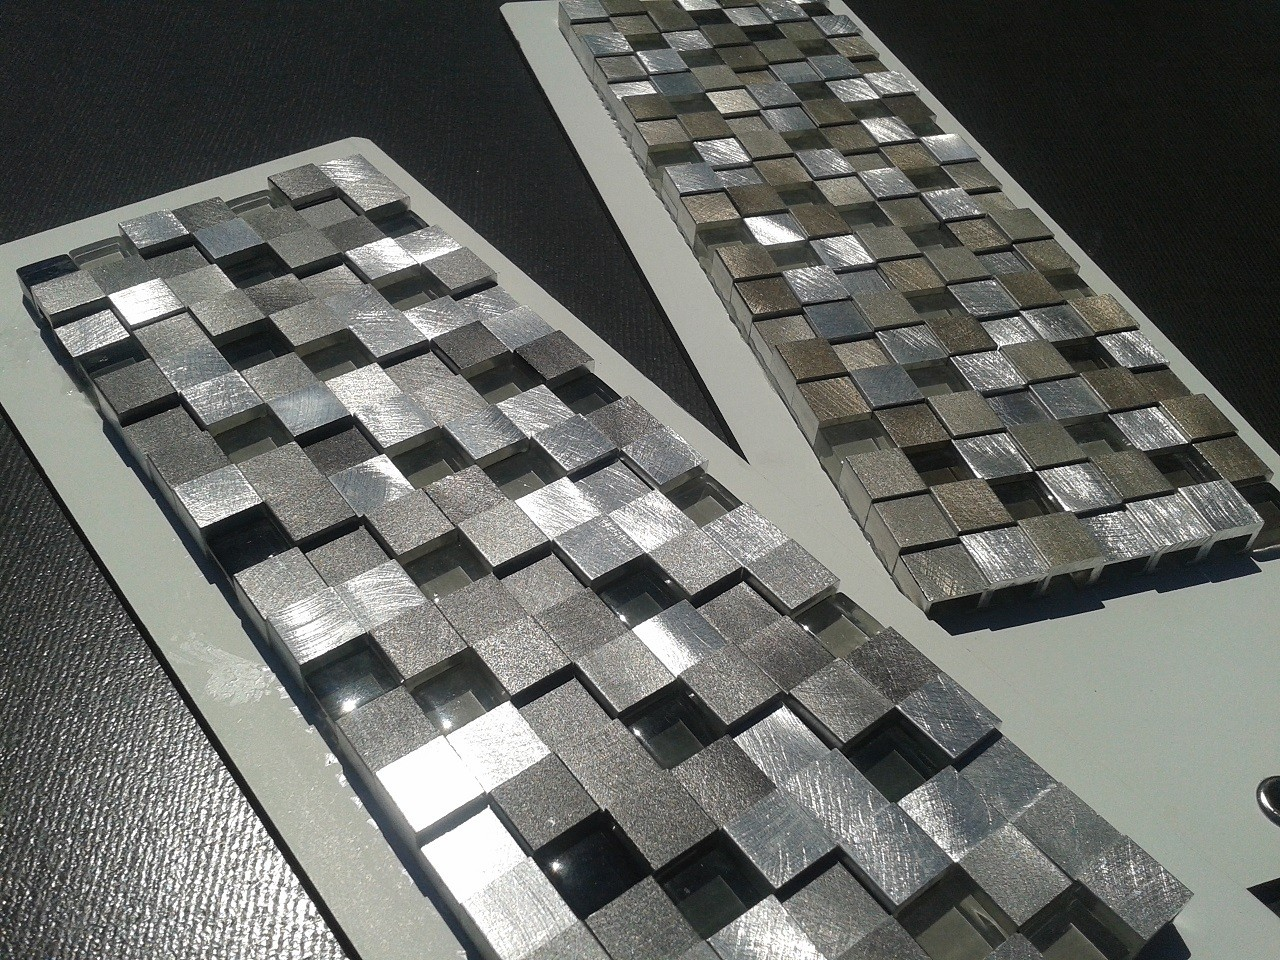 Grout Mosaic Tile Stainless Steel Mosaics And Tiles Tile Lines